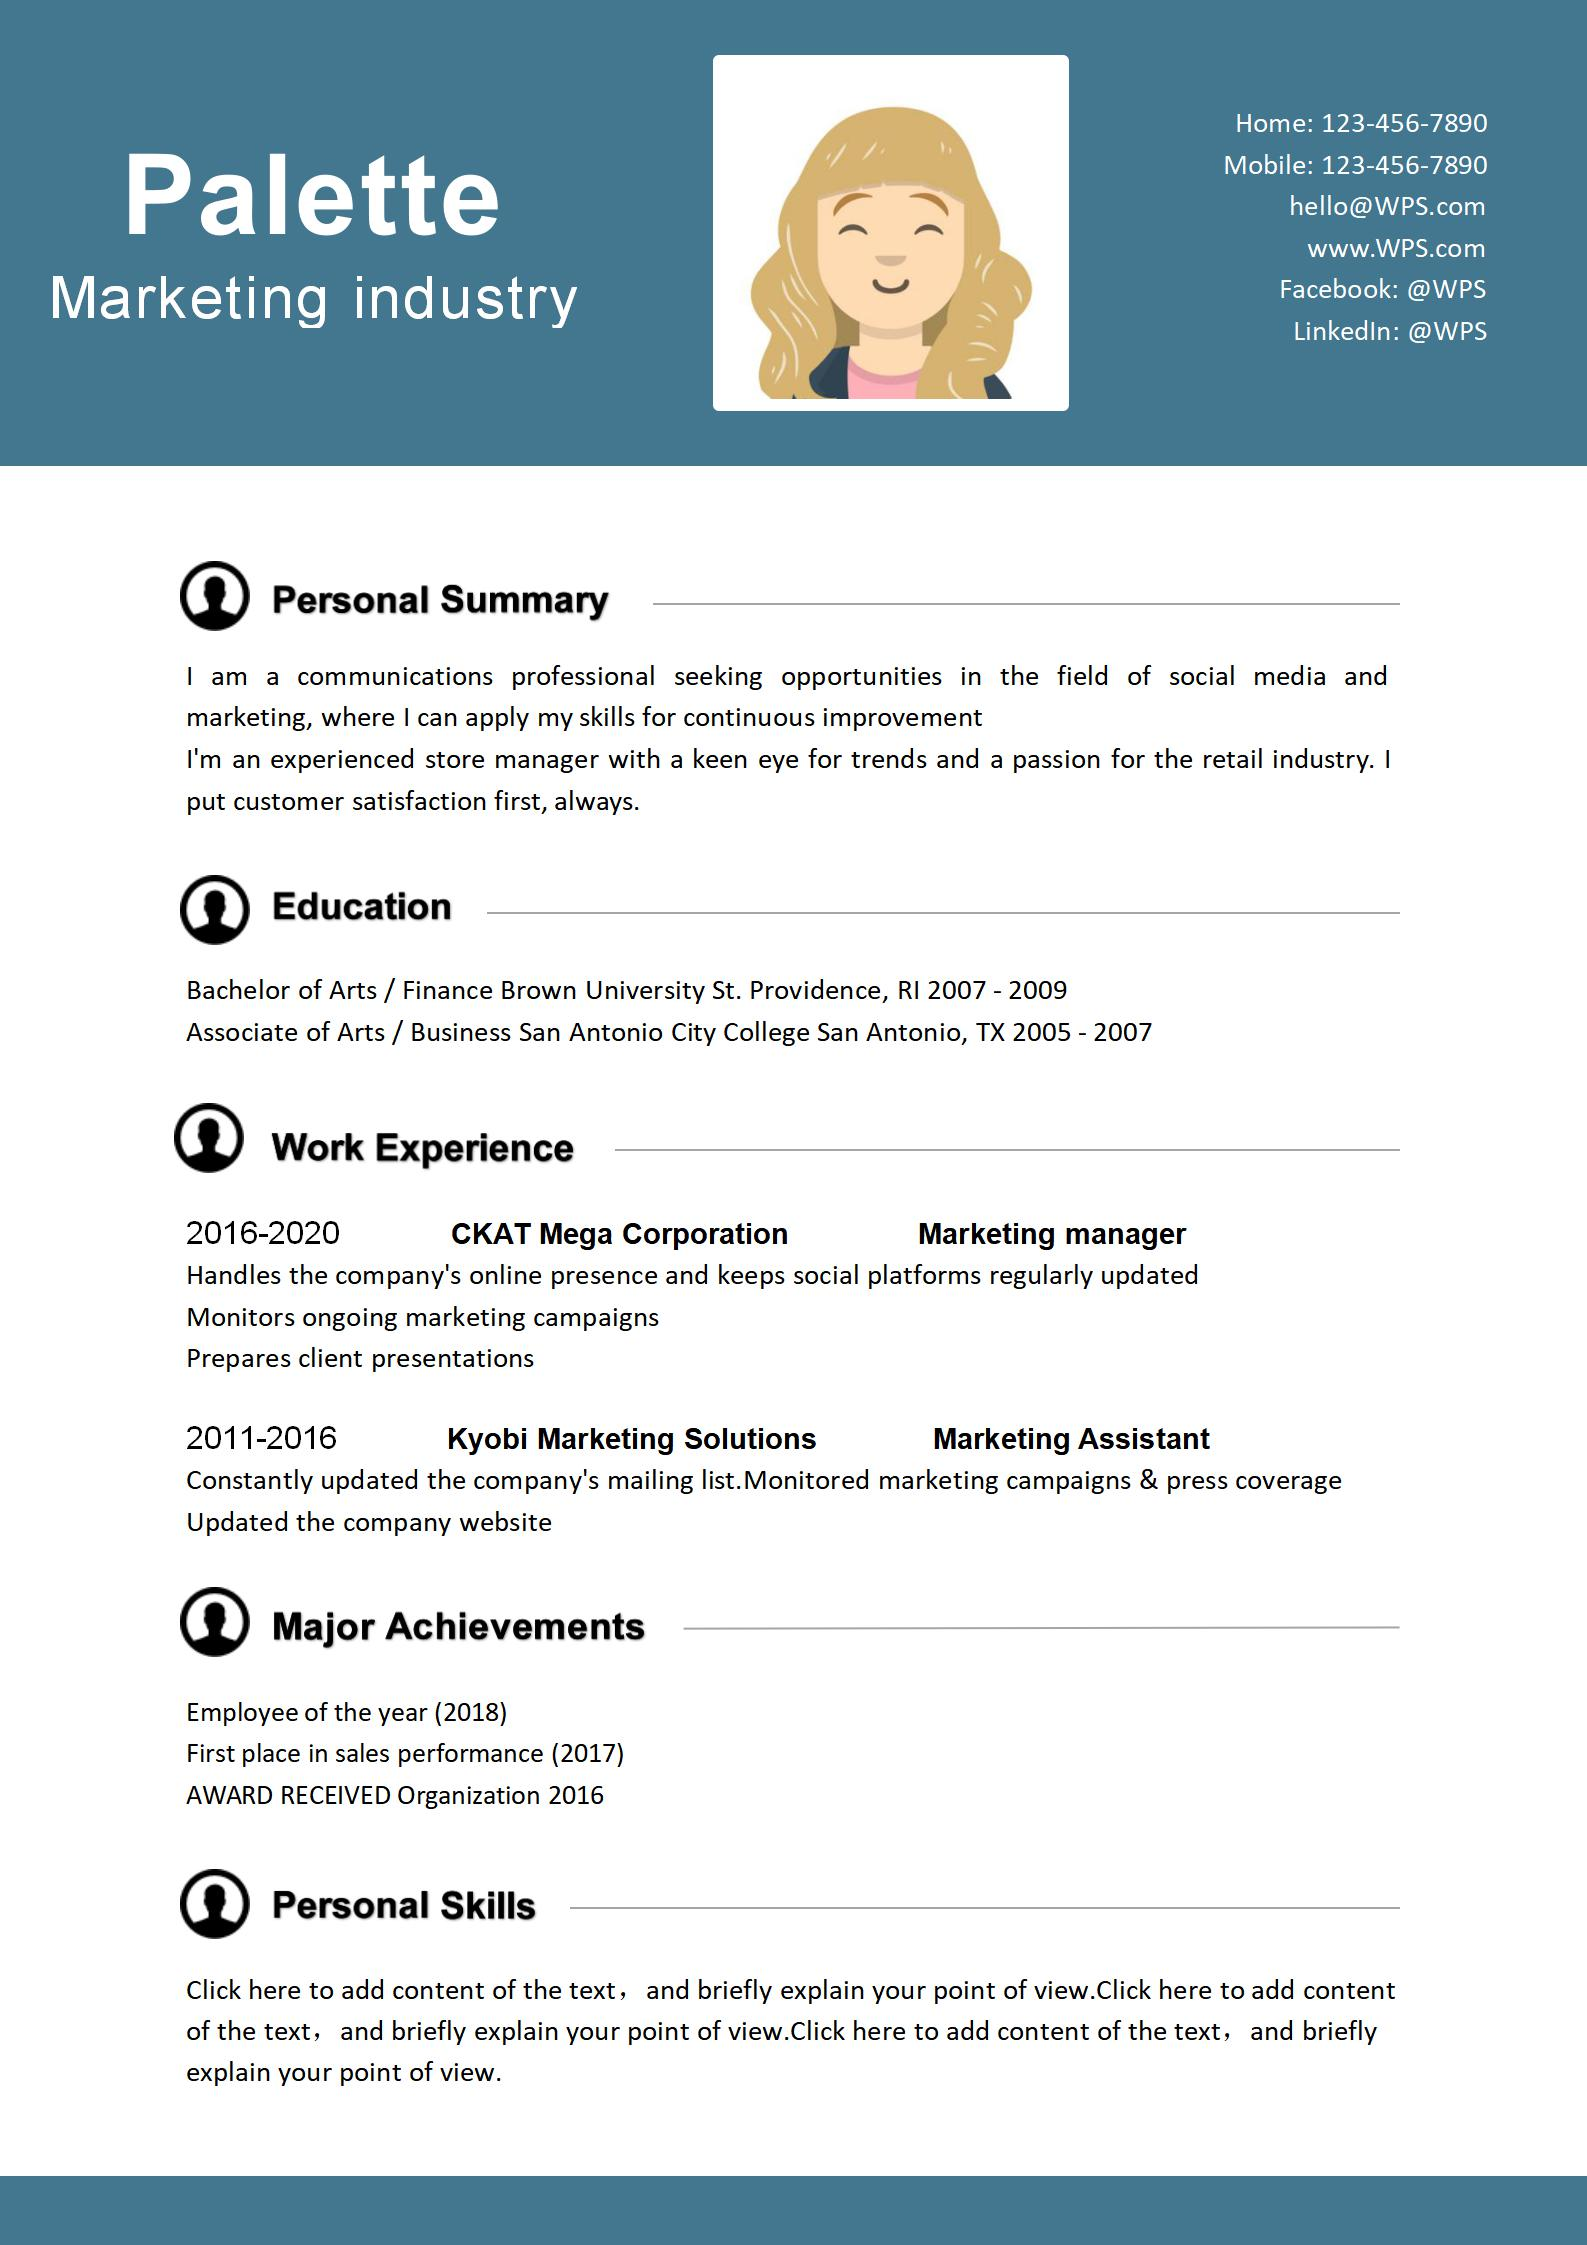 2020 Resume Trends.Wps Template Free Download Writer Presentation